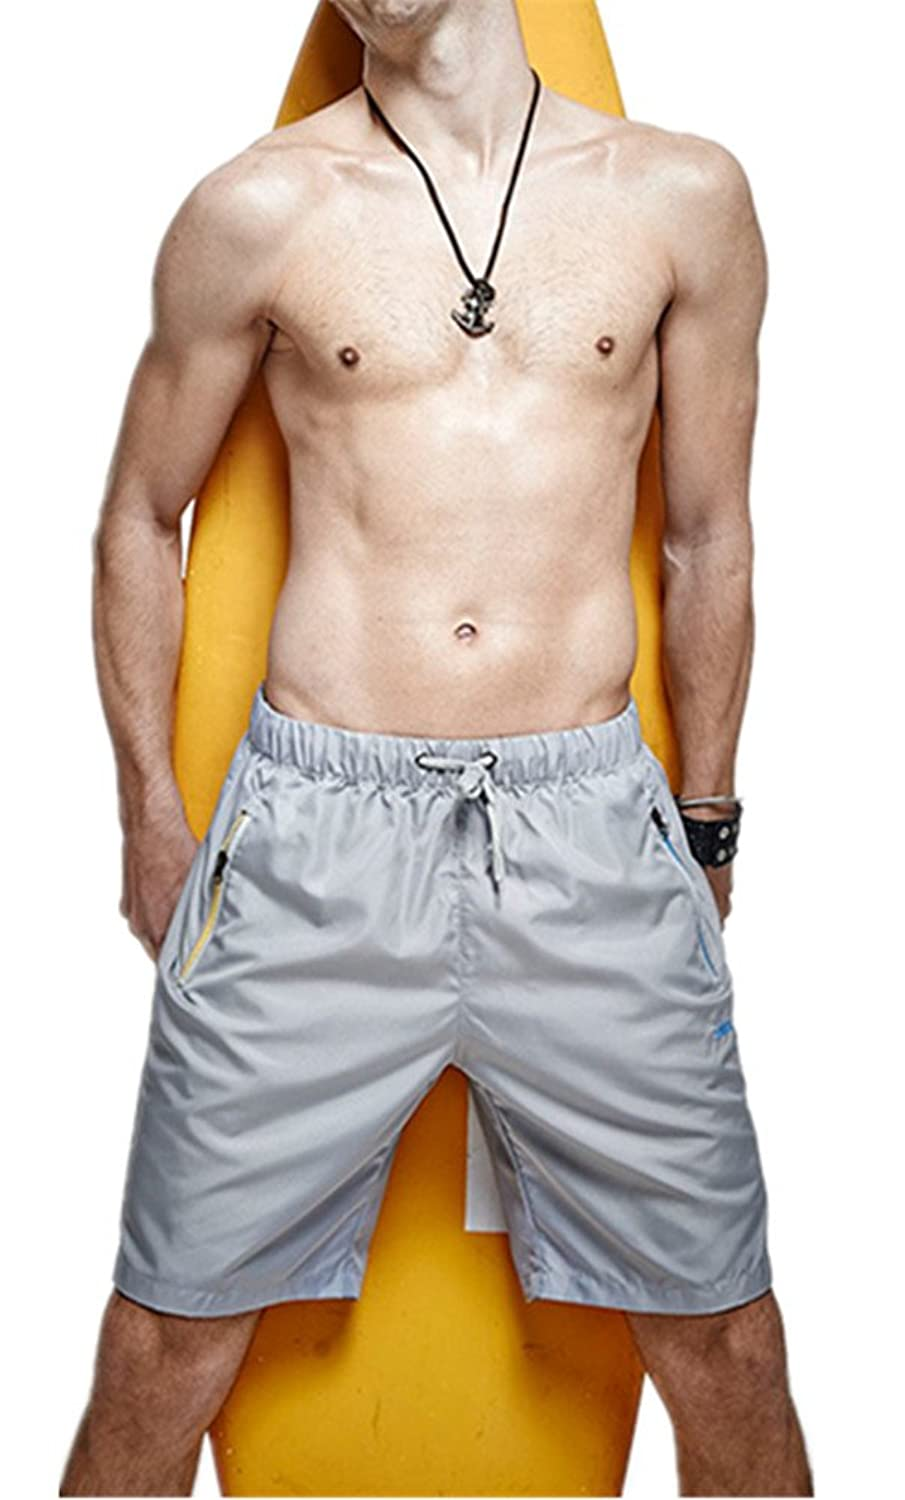 Emoyi Men's Surfing Shorts Beach Pants Sports Athletic Trousers Active Underwear.